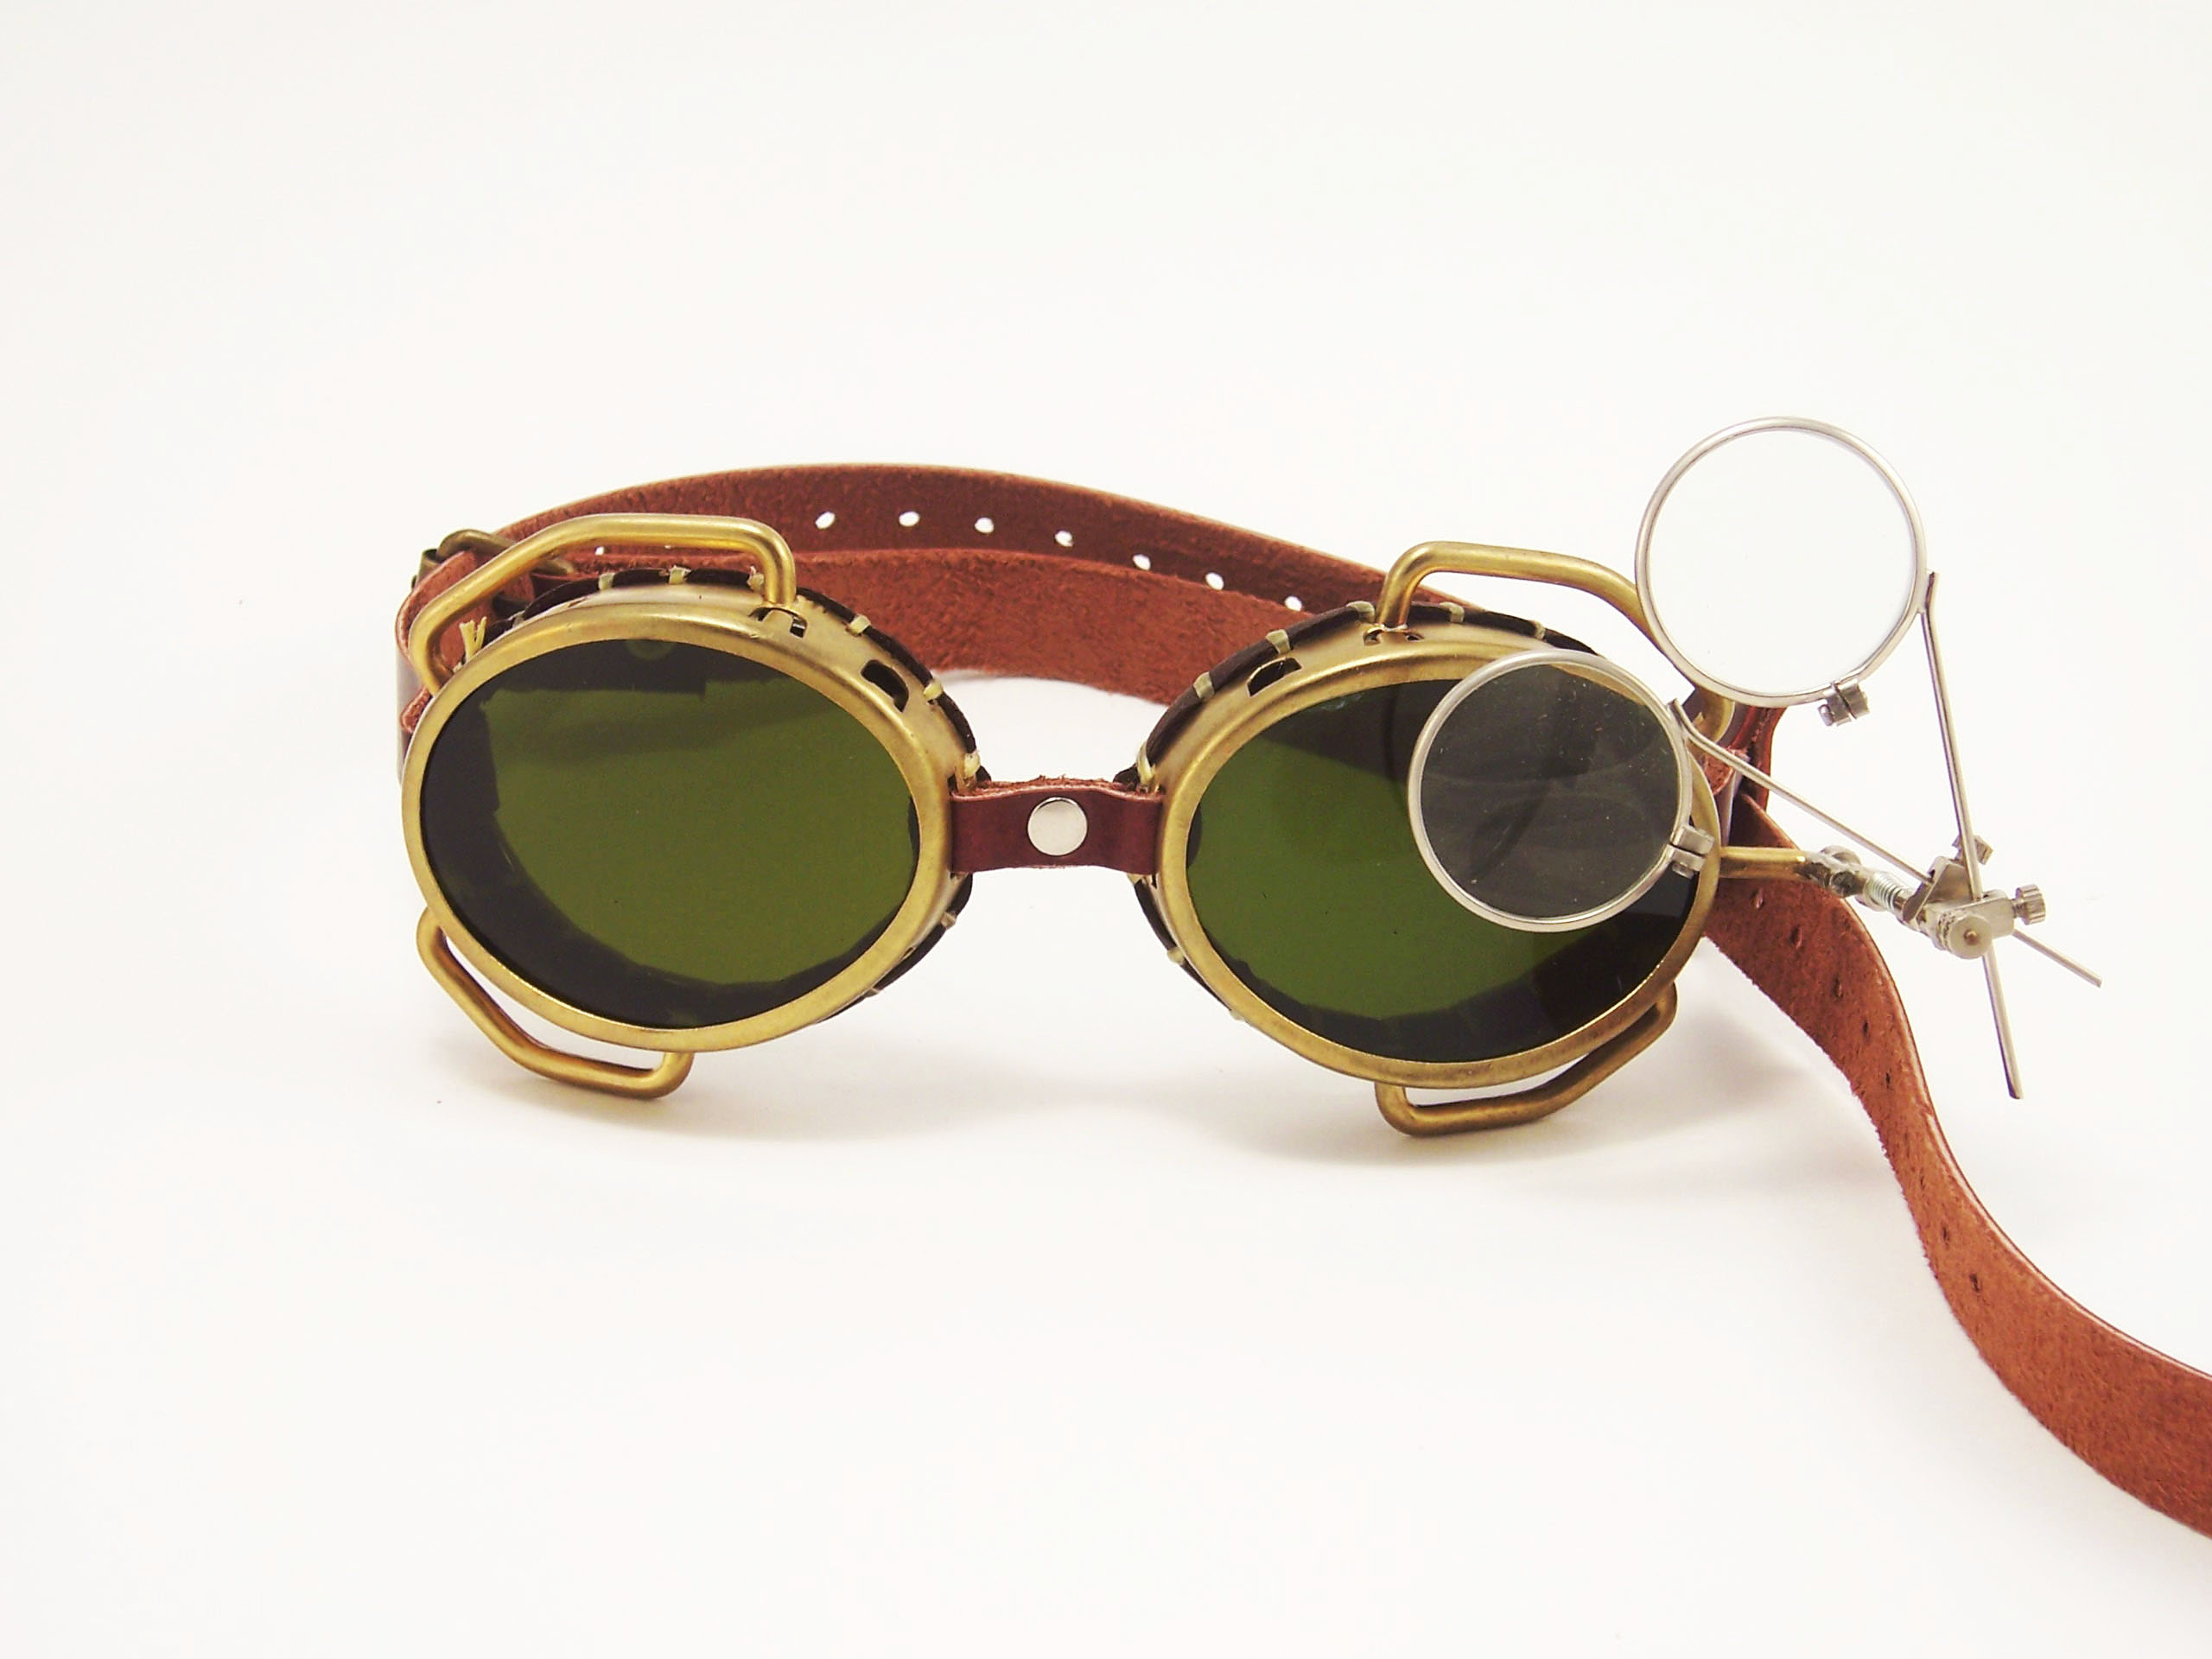 rebelsmarket_steampunk_goggles_solid_brass_with_flip_down_magnifiers_and_conduits_goggles_7.jpg